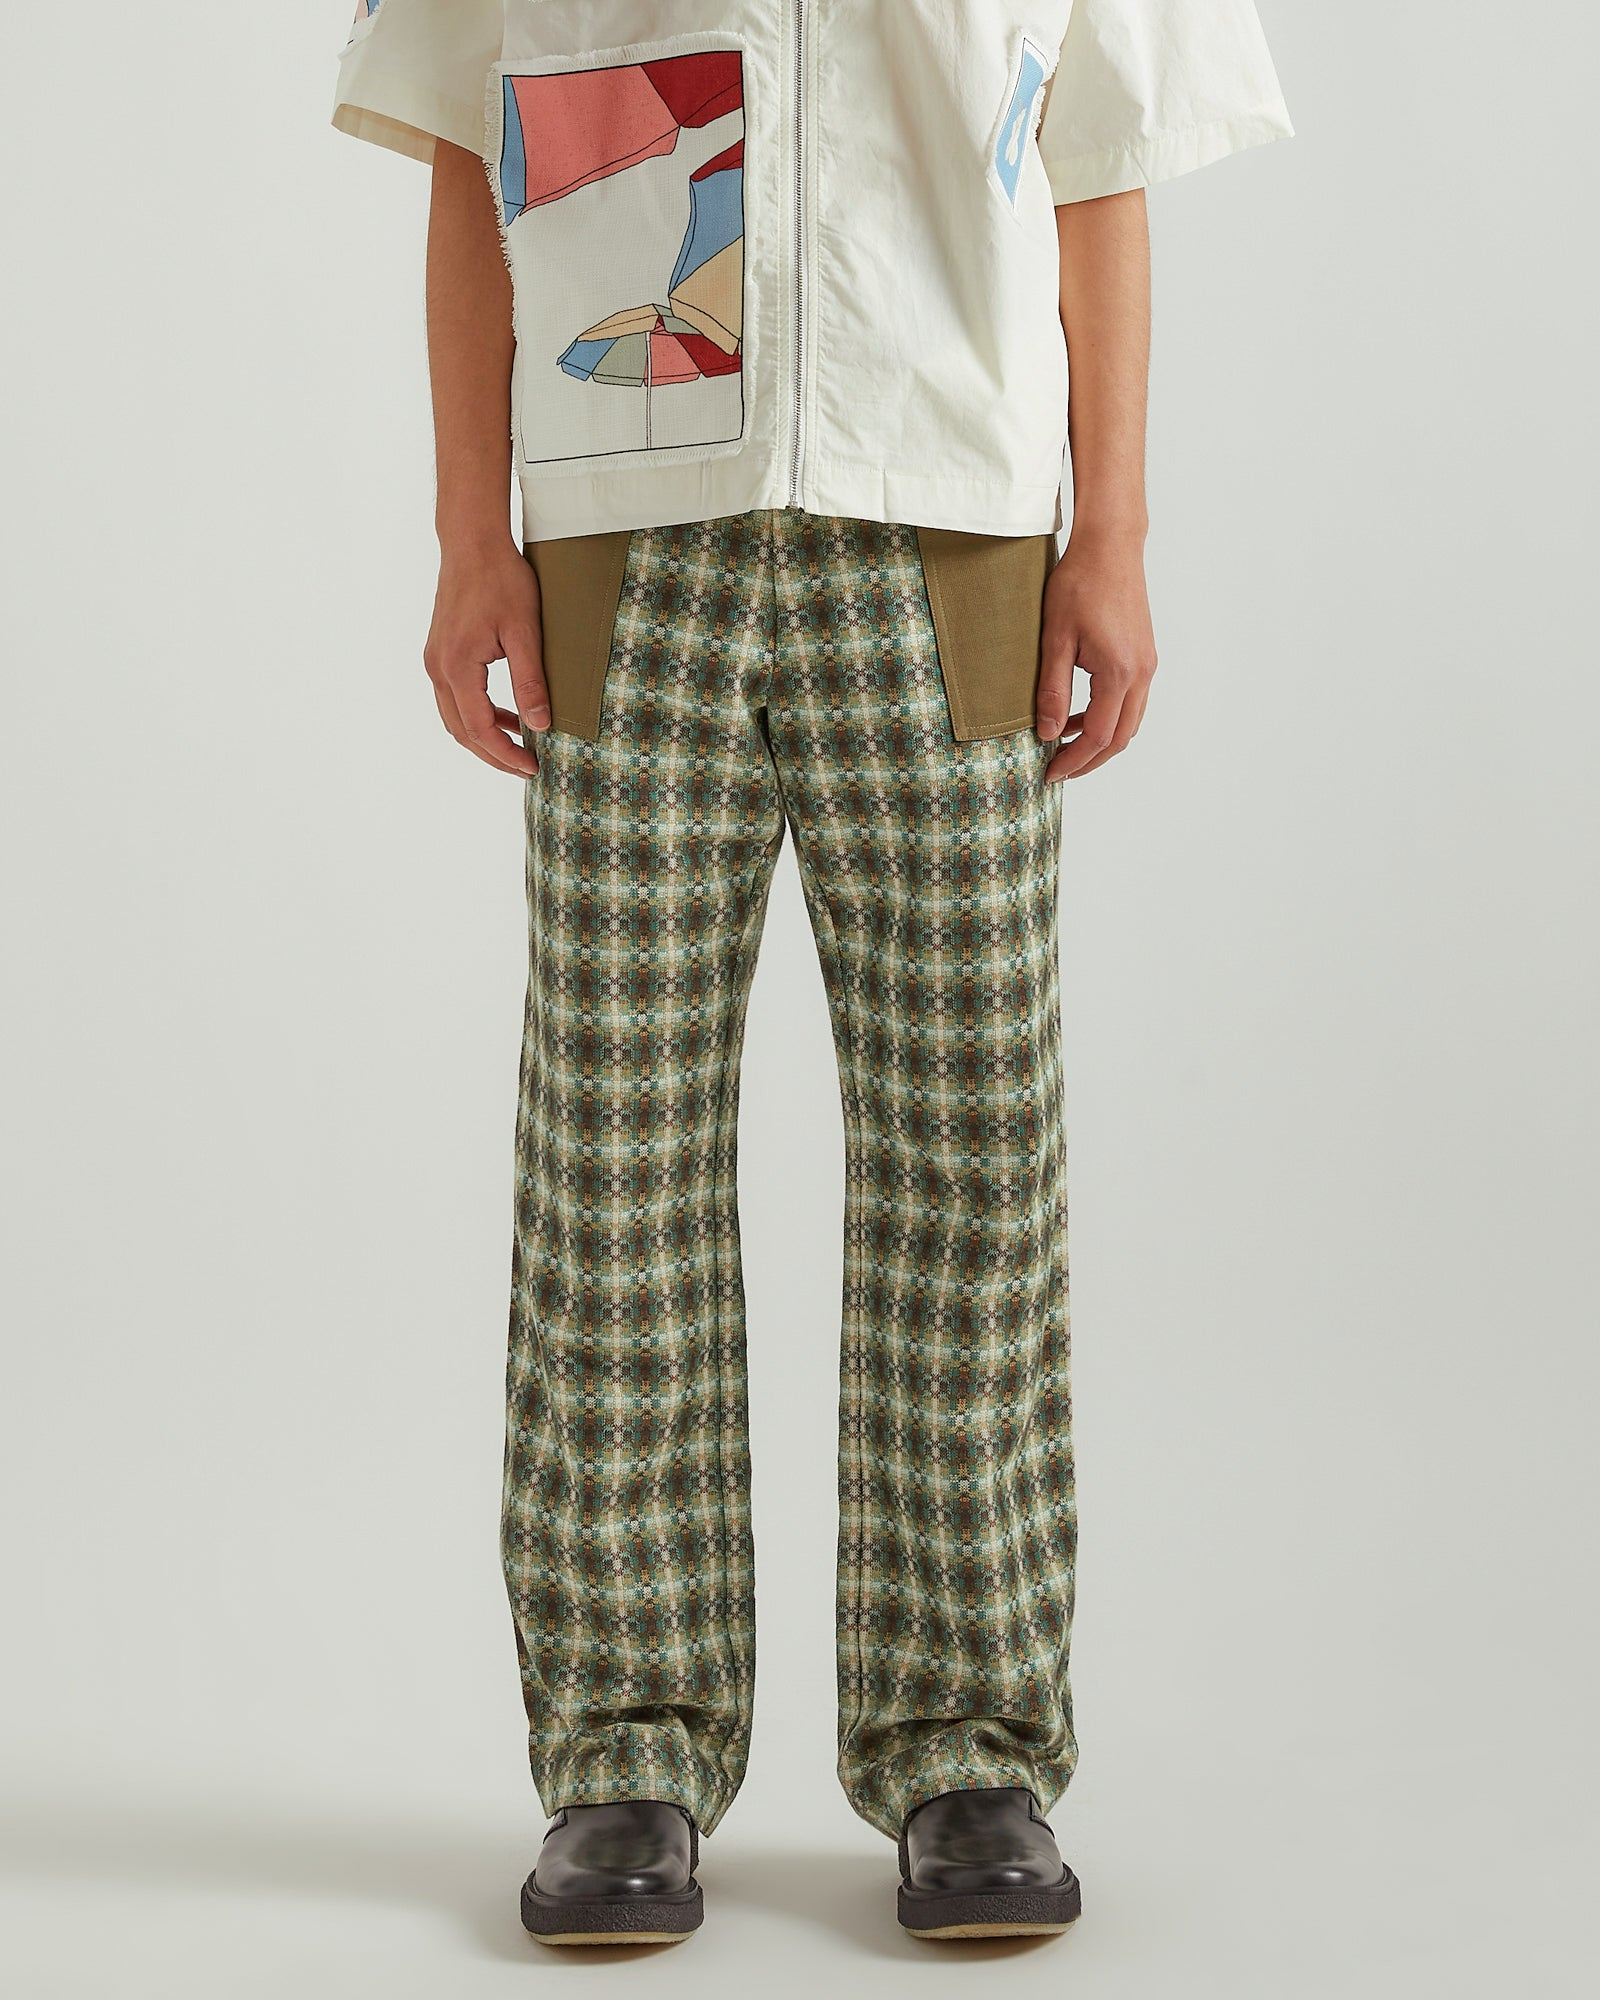 Patchwork Pants in Green Plaid